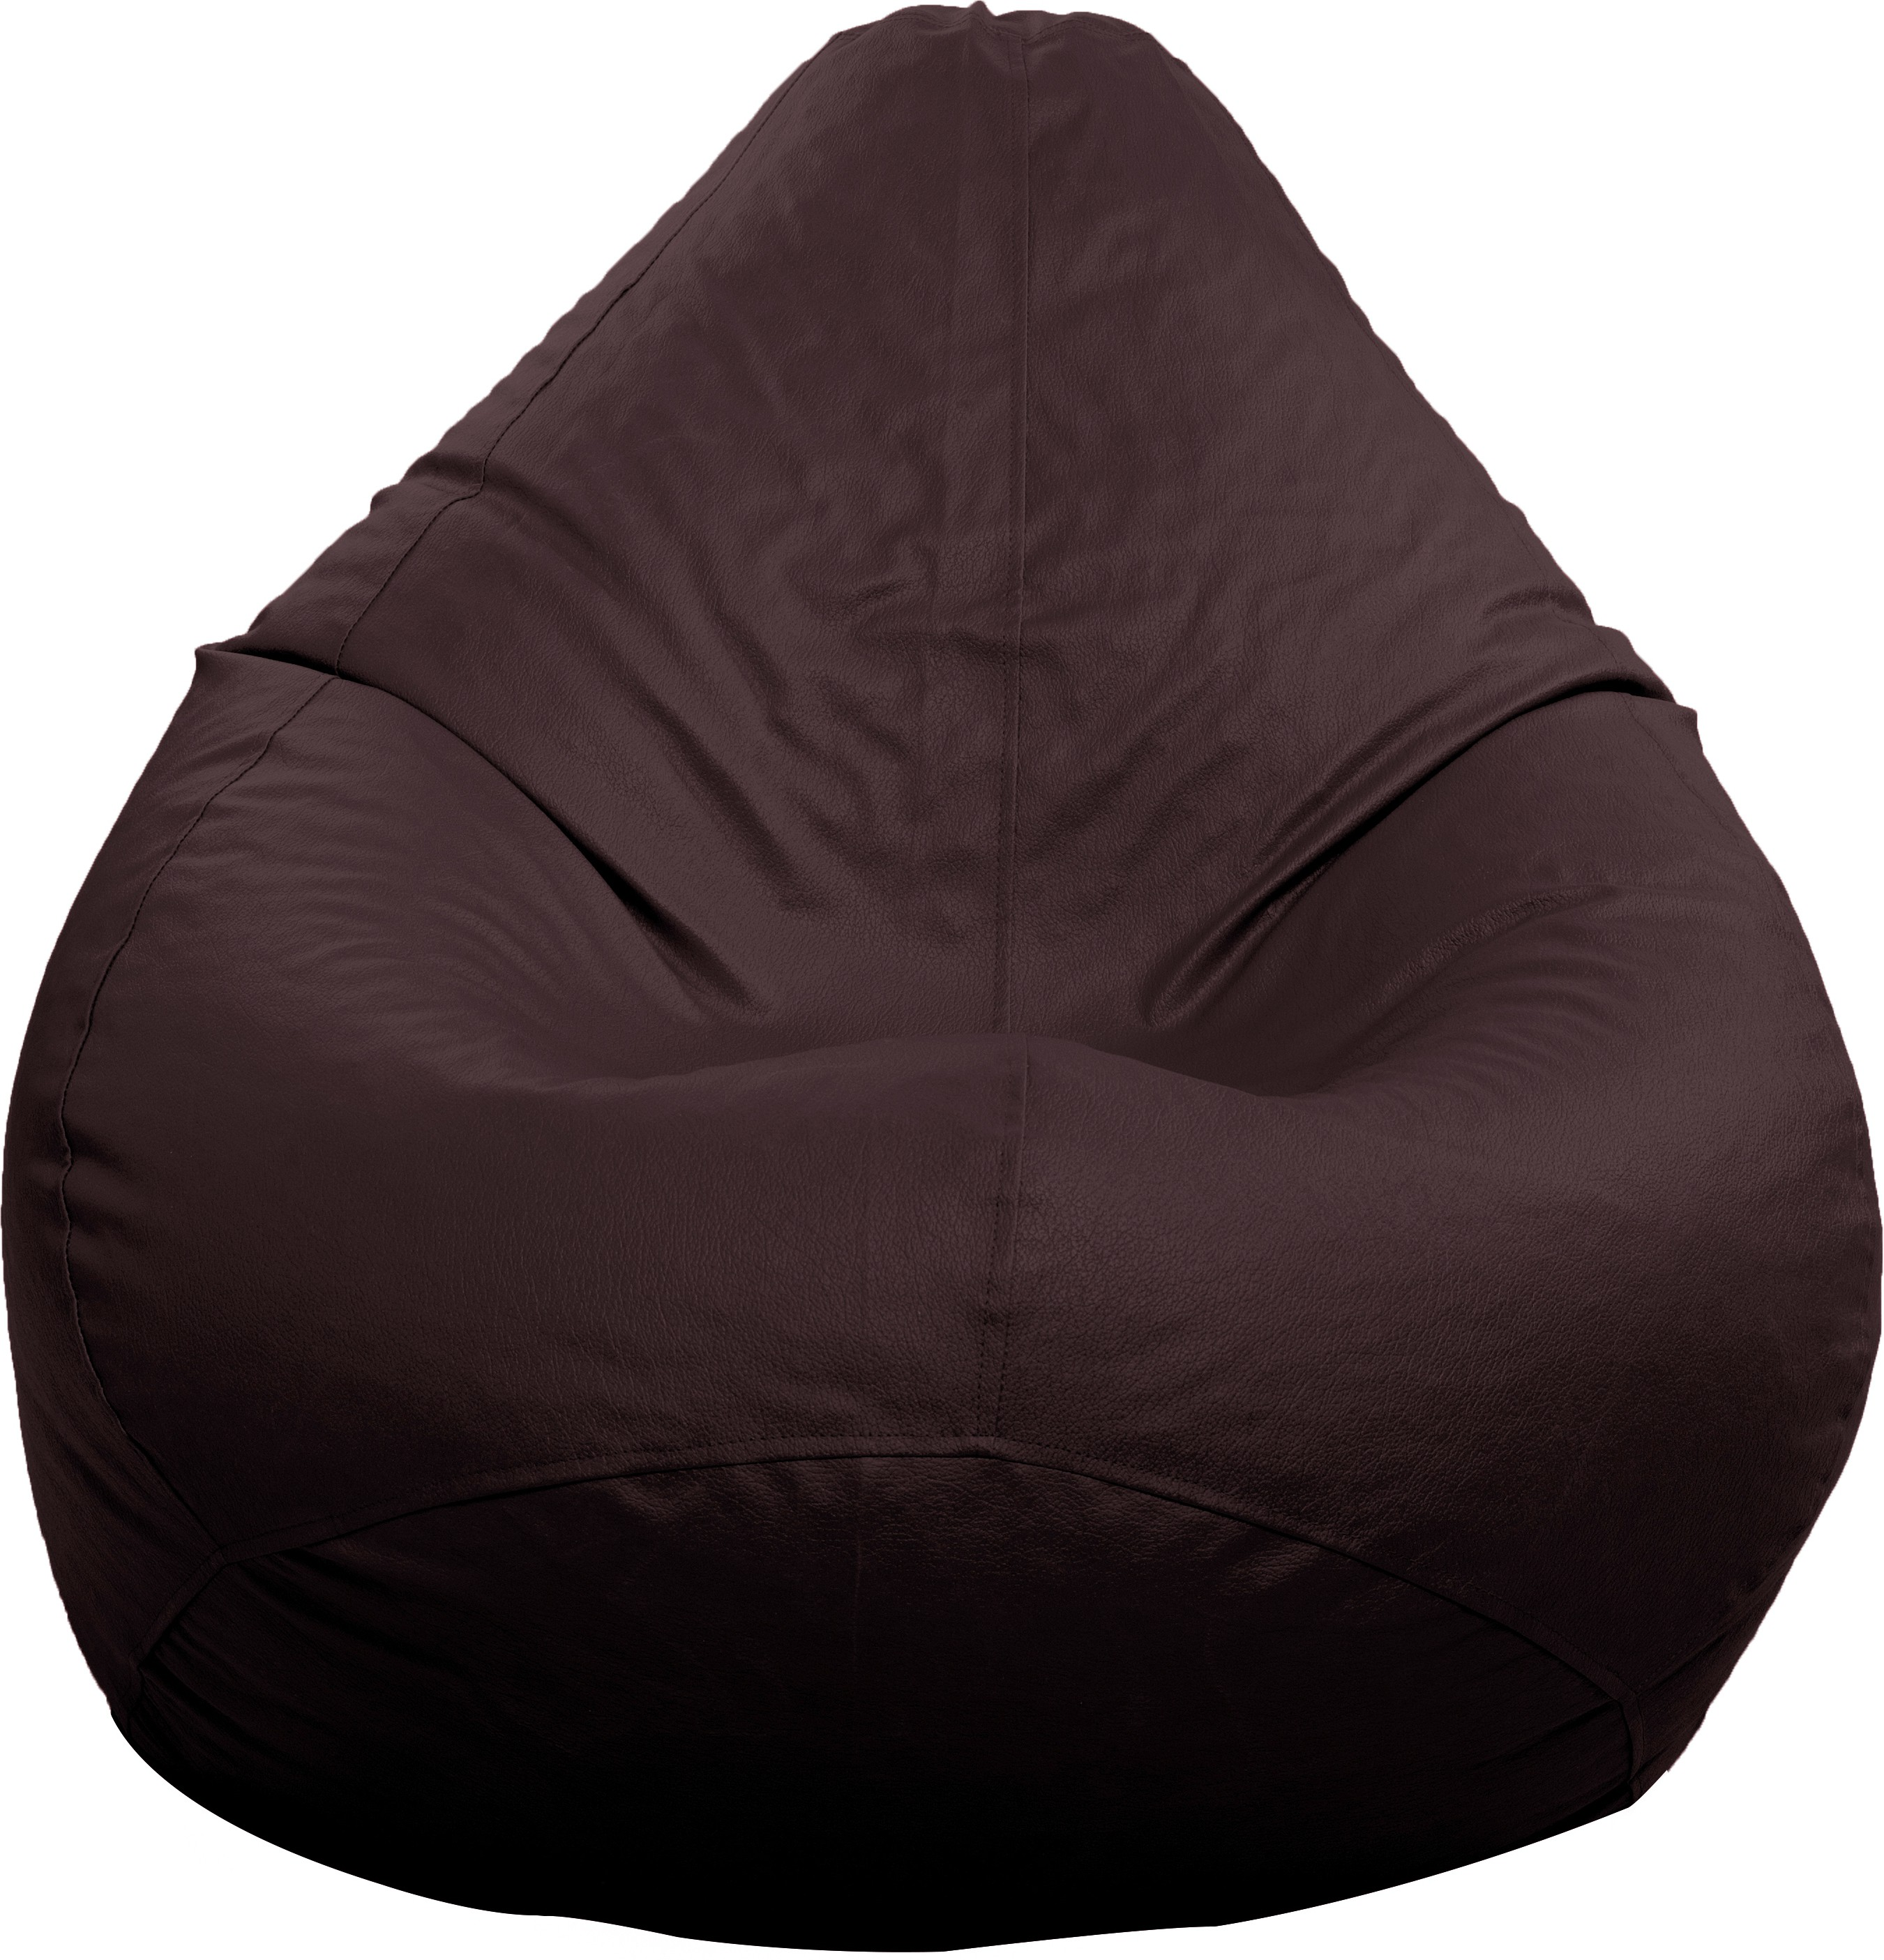 View Styleco XL Bean Bag  With Bean Filling(Brown) Furniture (Styleco)